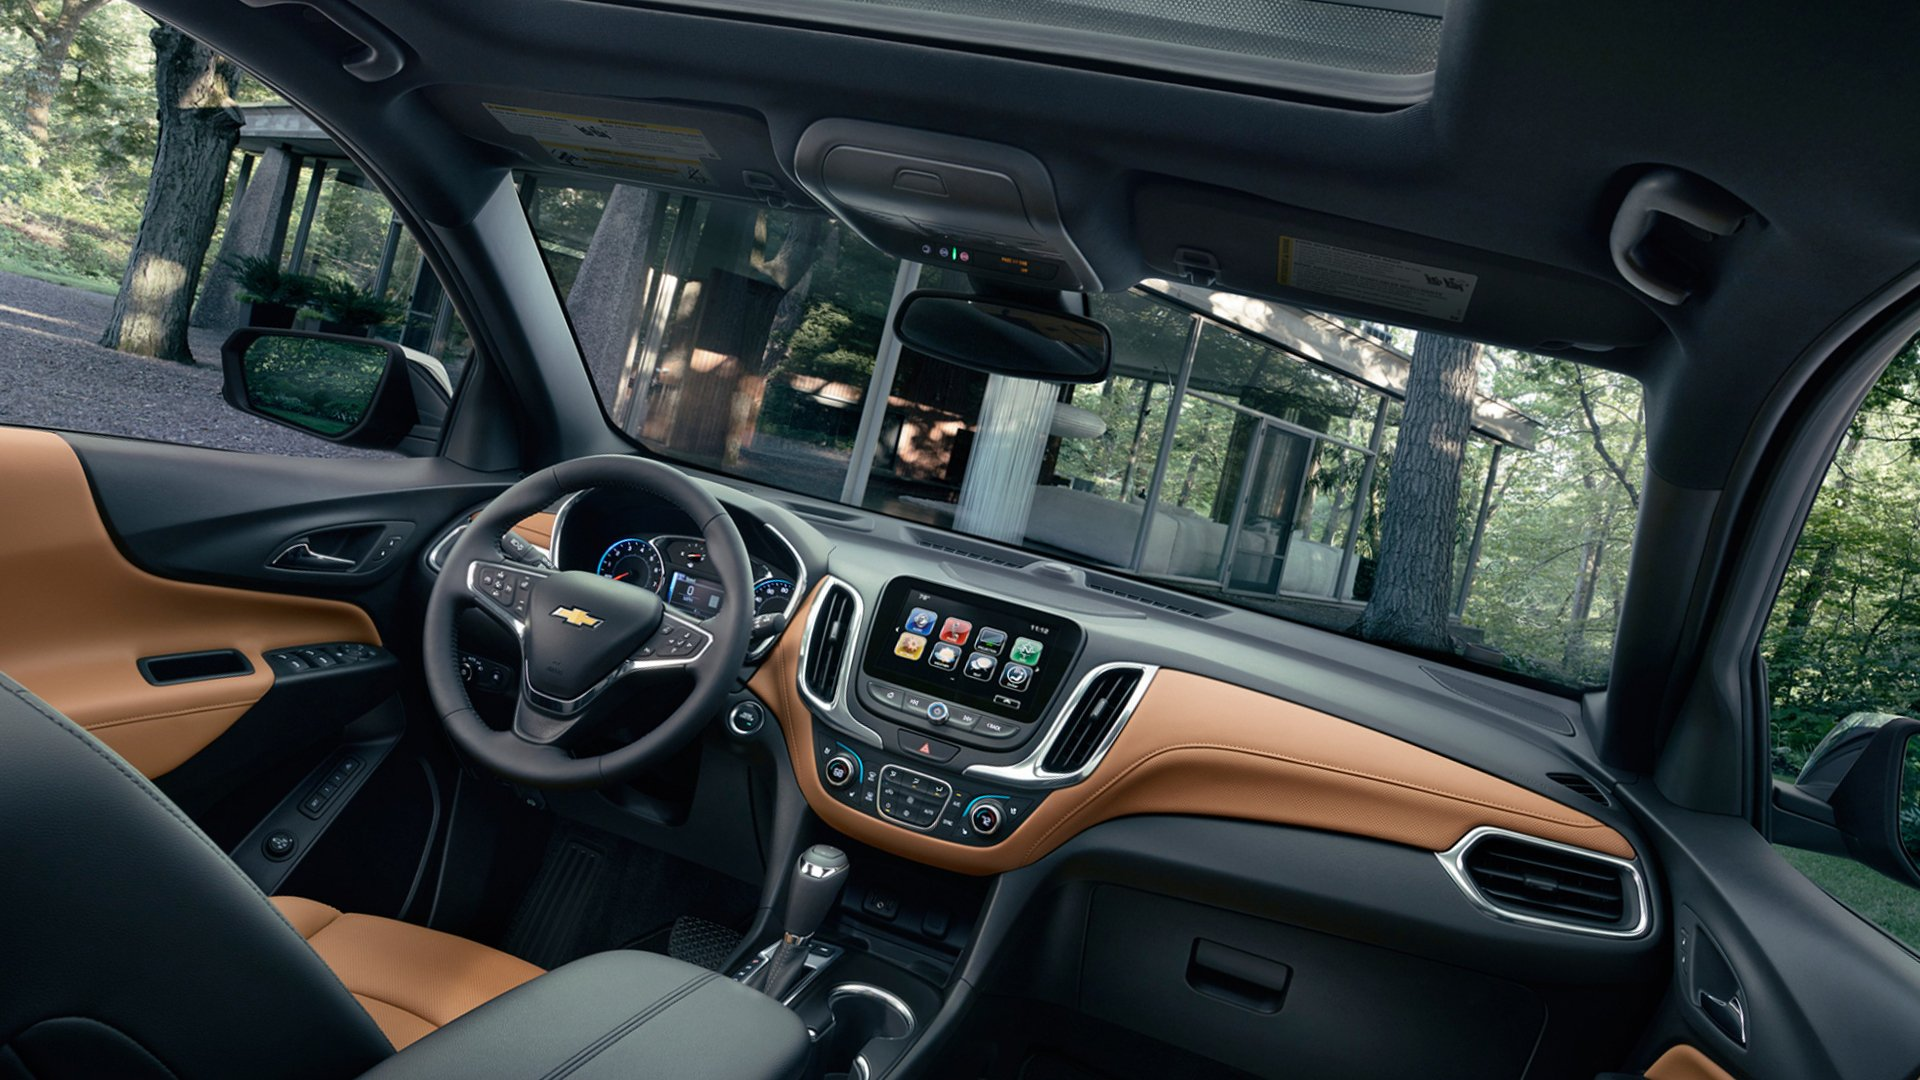 New 2019 Chevrolet Equinox Interior Design